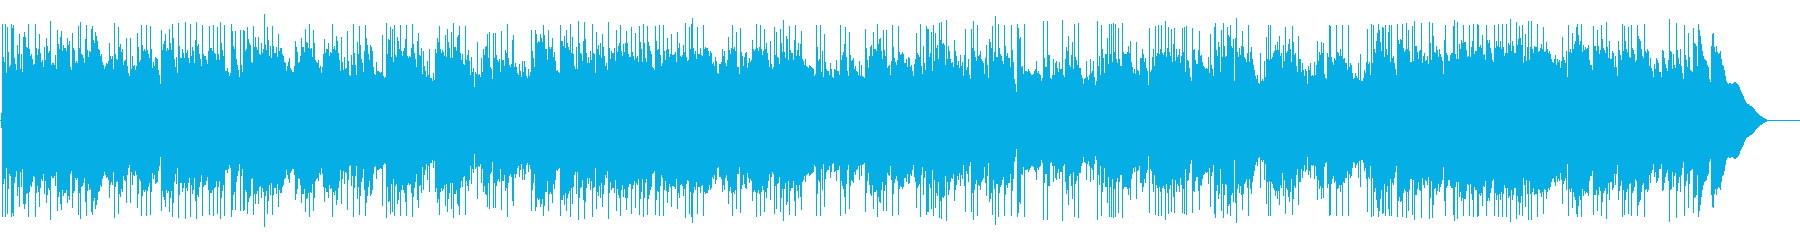 A cool and bright acoustic sound's reproduced waveform